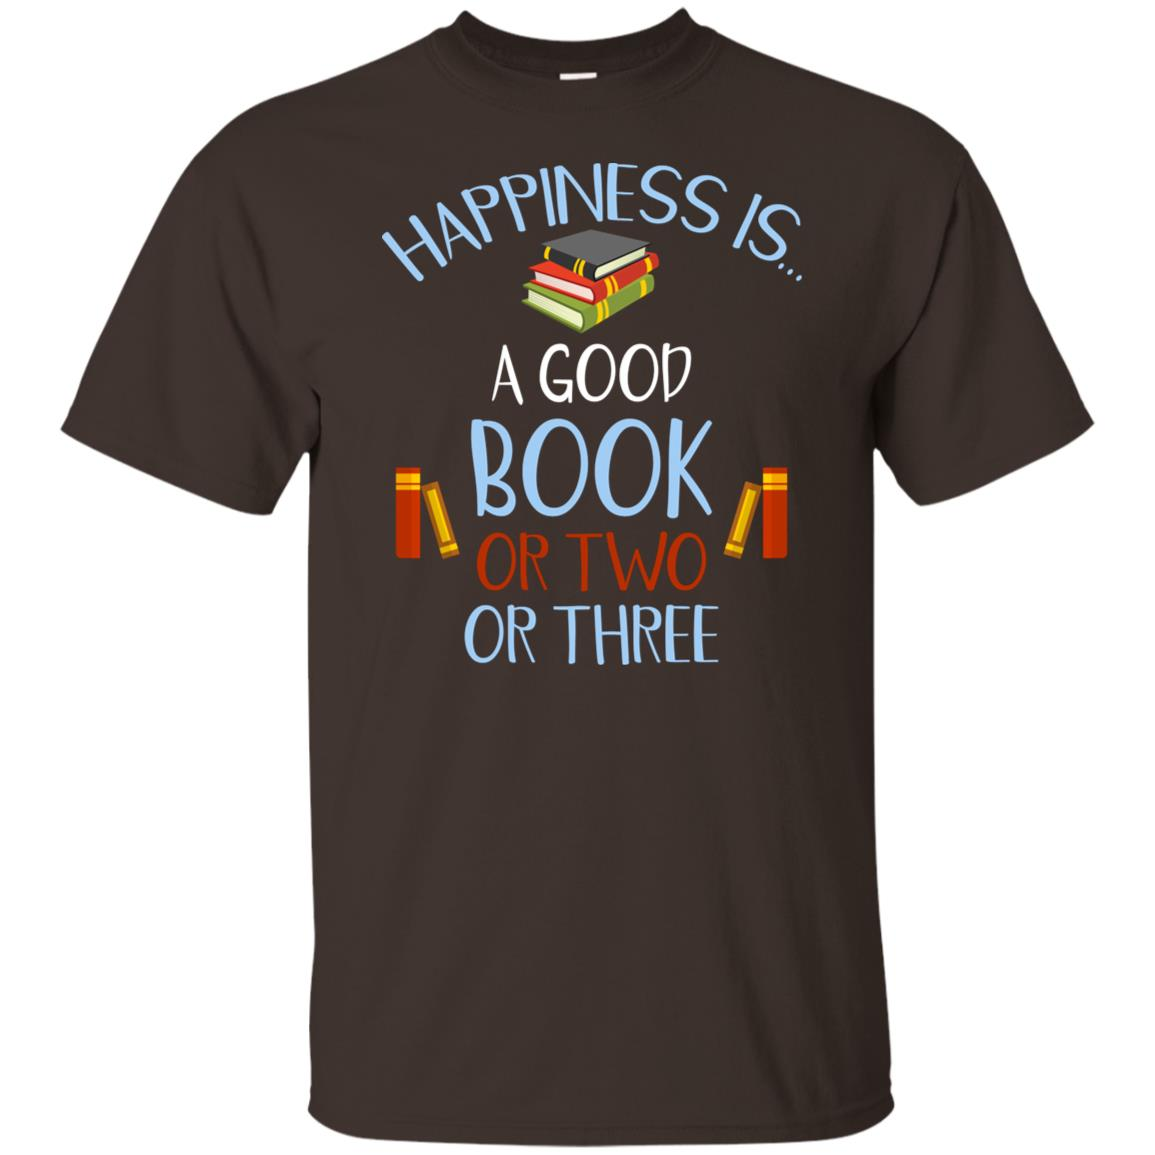 Happiness is a Good Book or Two or Three Fun Unisex Short Sleeve